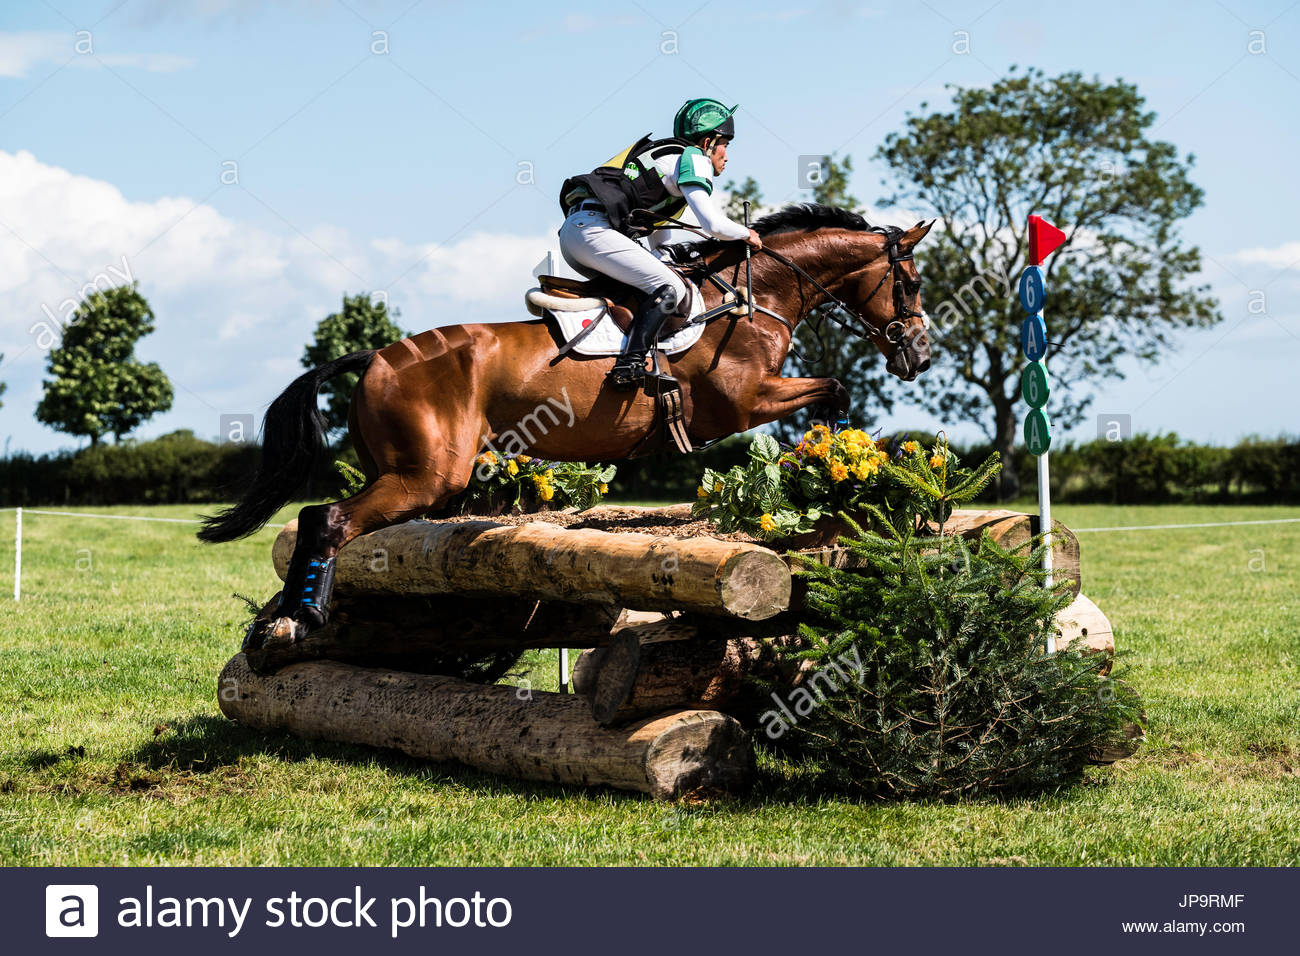 Burgham, Morpeth, Northumberland, UK. 28/29. Juli 2017. Vielseitigkeitsreiter konkurrieren auf Burgham International Horse Trials in den Disziplinen Dressur, Showju Stockbild